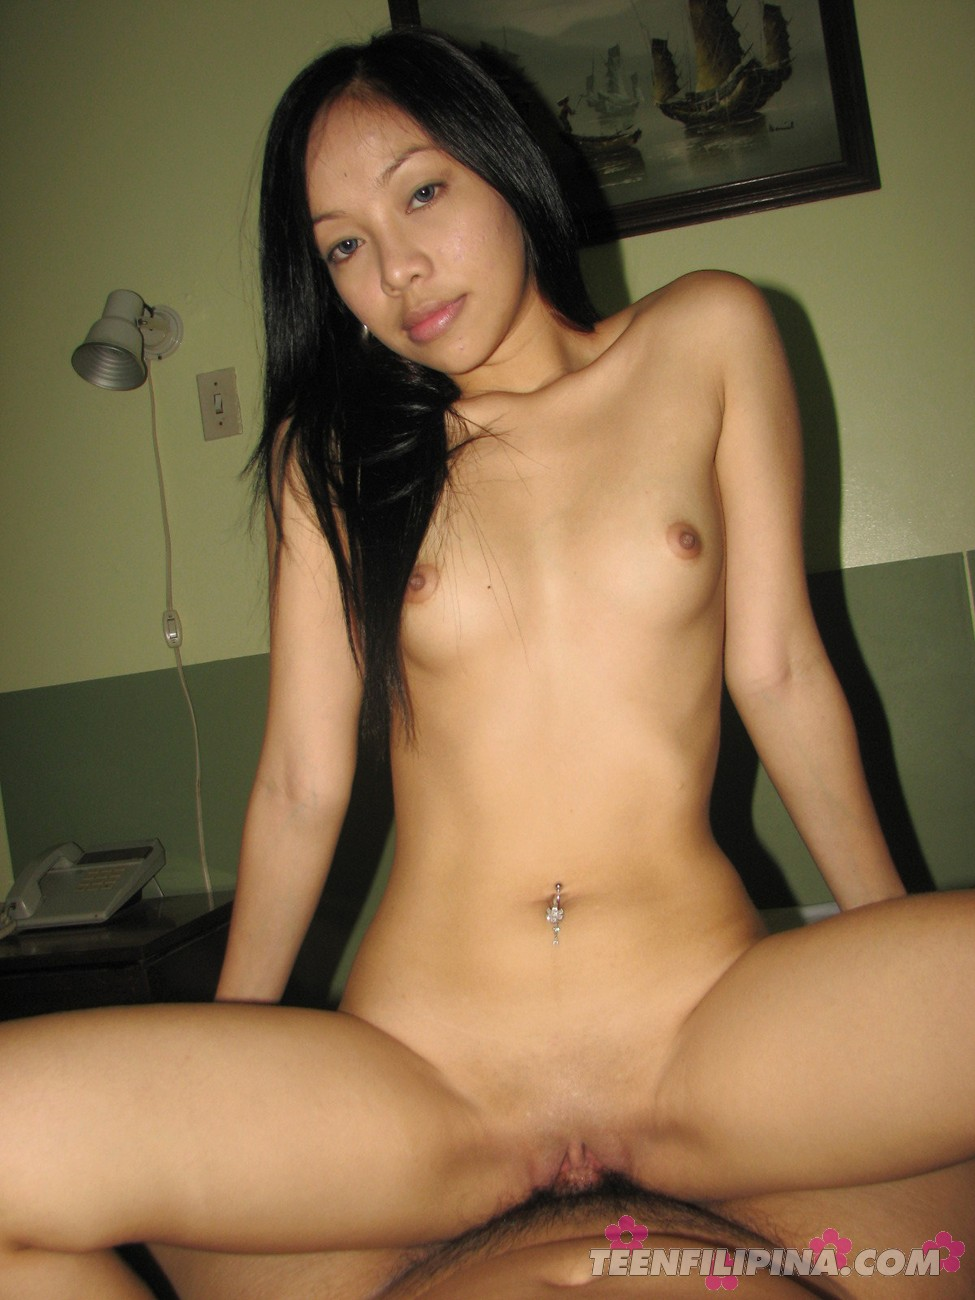 Small Breasted Girl In Action  Asian Porn Photos-1177